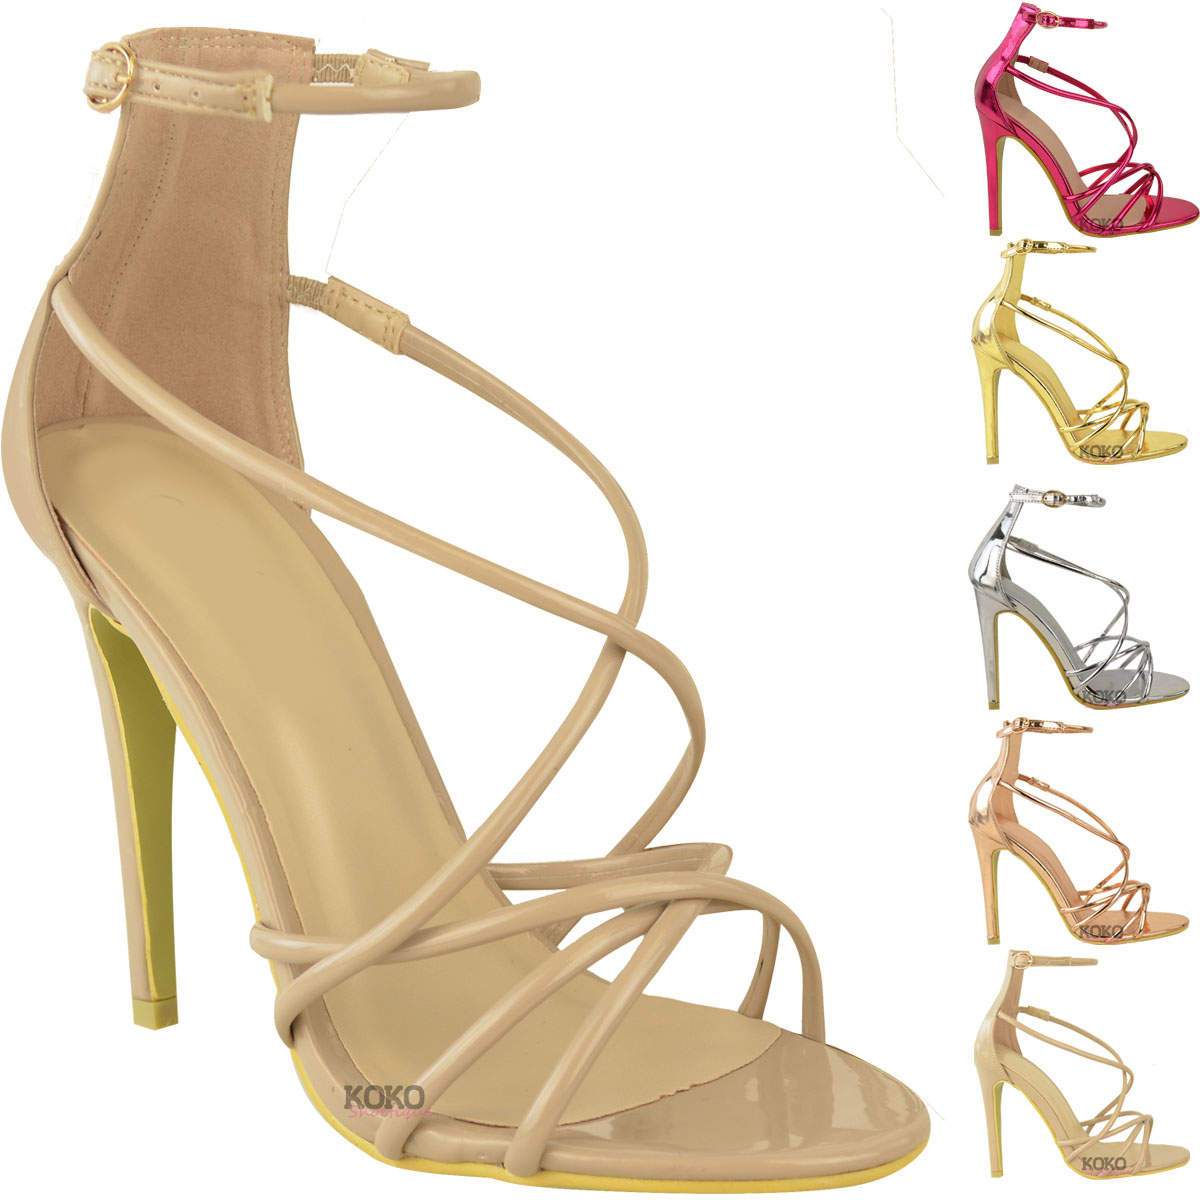 womens ladies high heels party sandals strappy stiletto celeb evening shoes size ebay. Black Bedroom Furniture Sets. Home Design Ideas